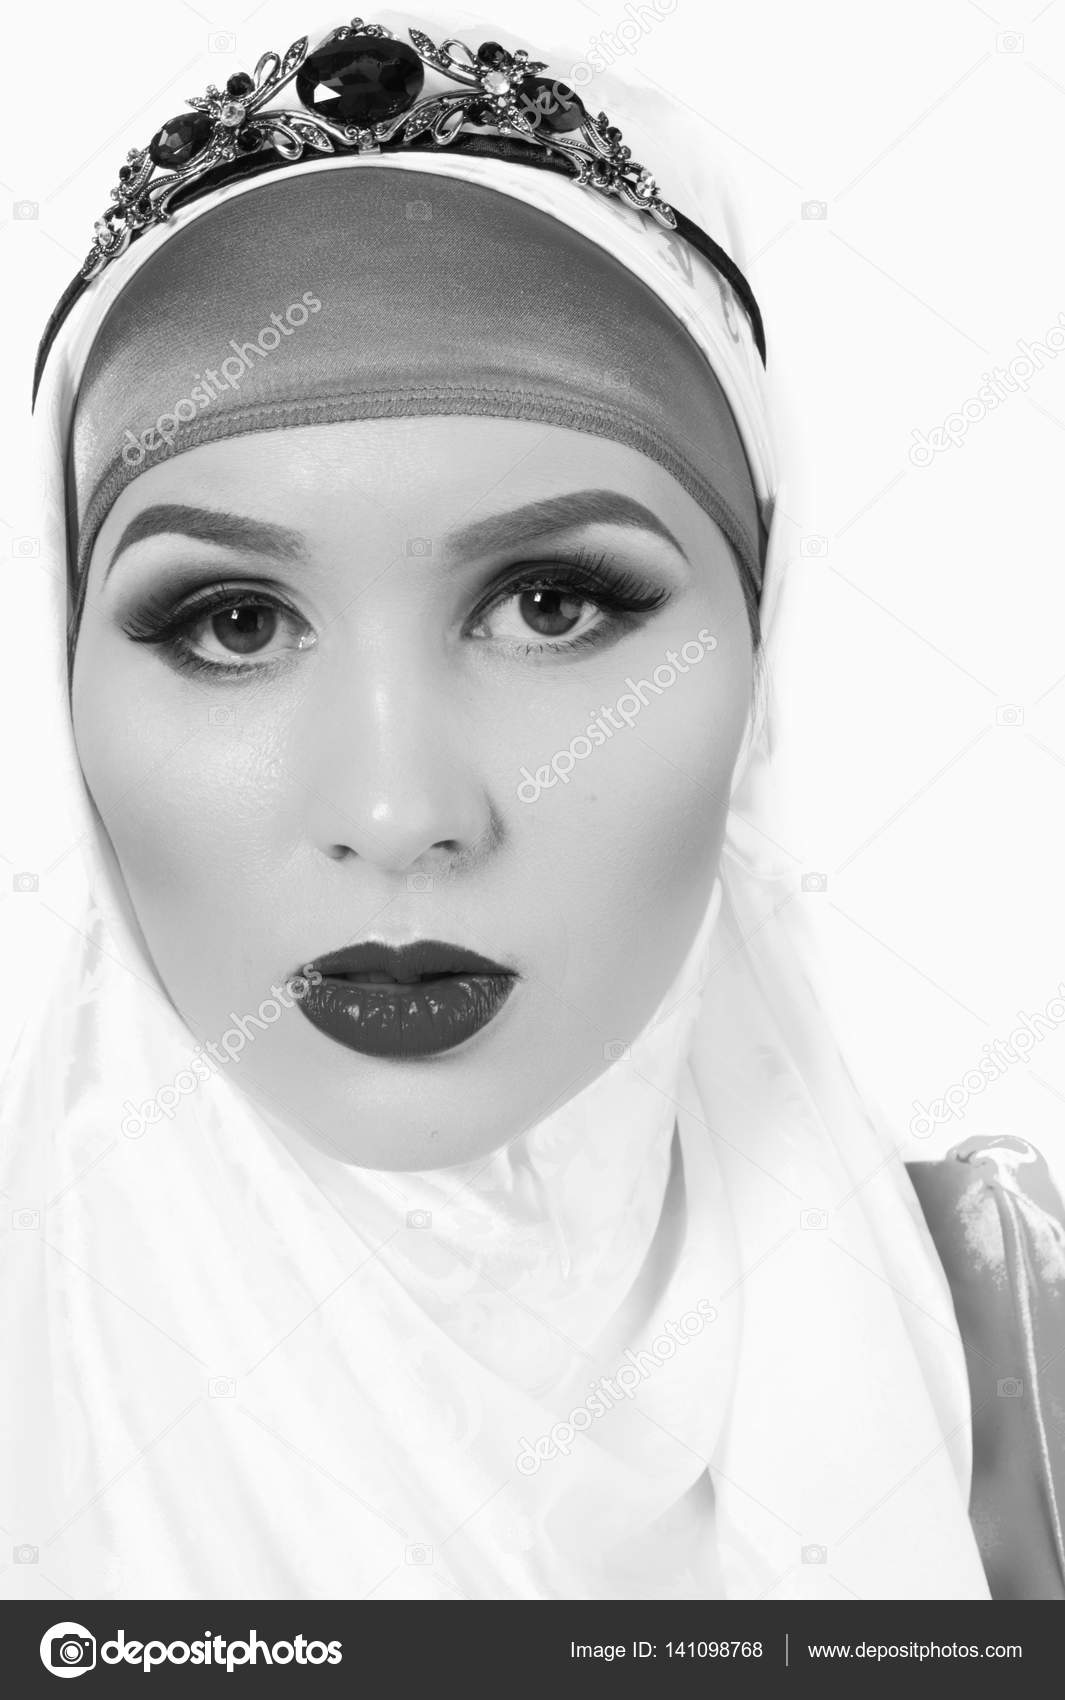 Hijab The Islamic Headscarf For Women And General Clothing Headpiece Stock Photo